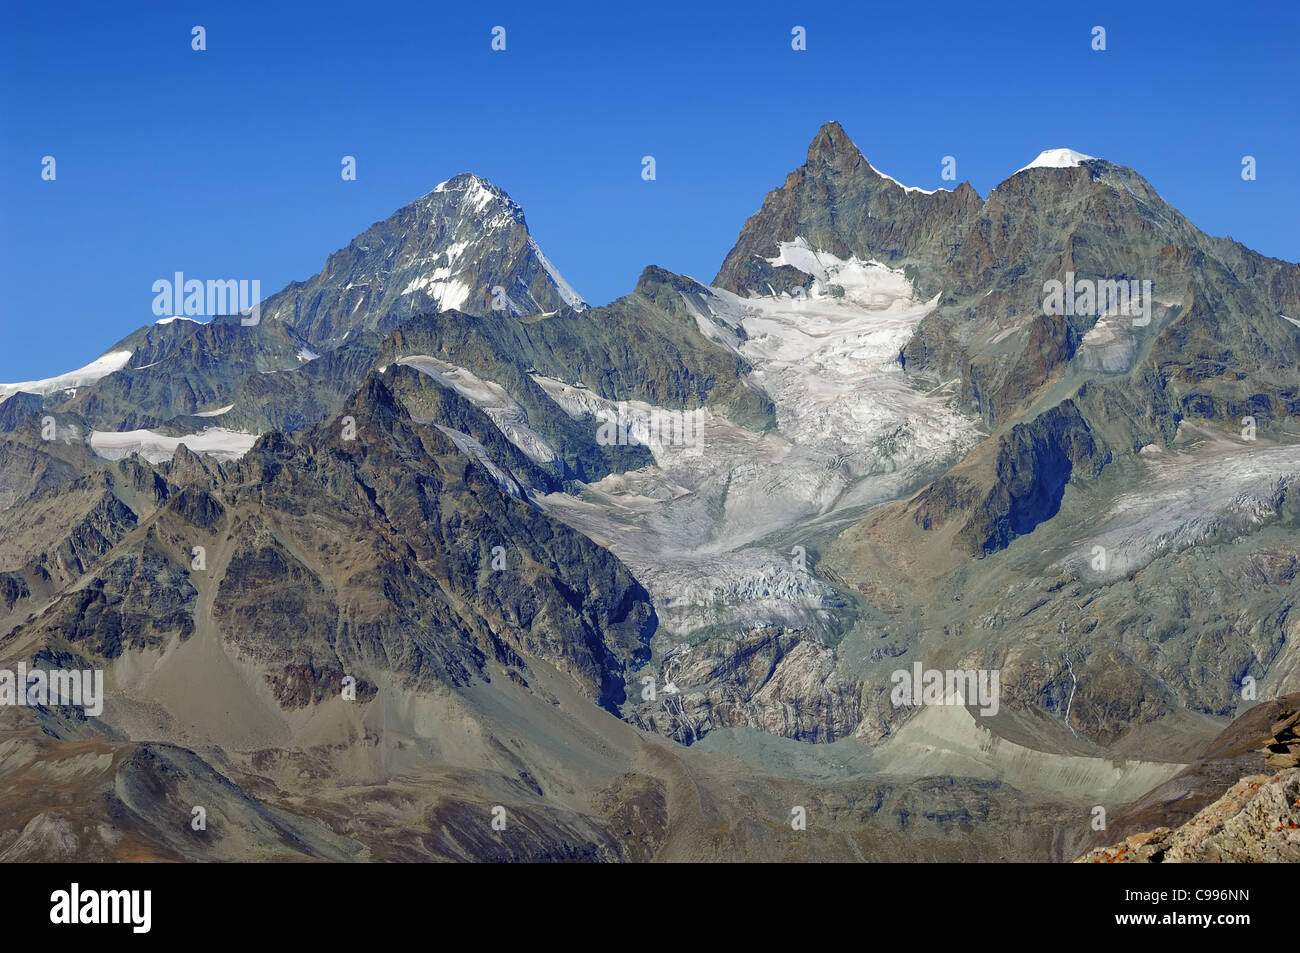 Dent Blanche with its glaciers overlooks the village of Zermatt in the canton of Valais, Switzerland - Stock Image